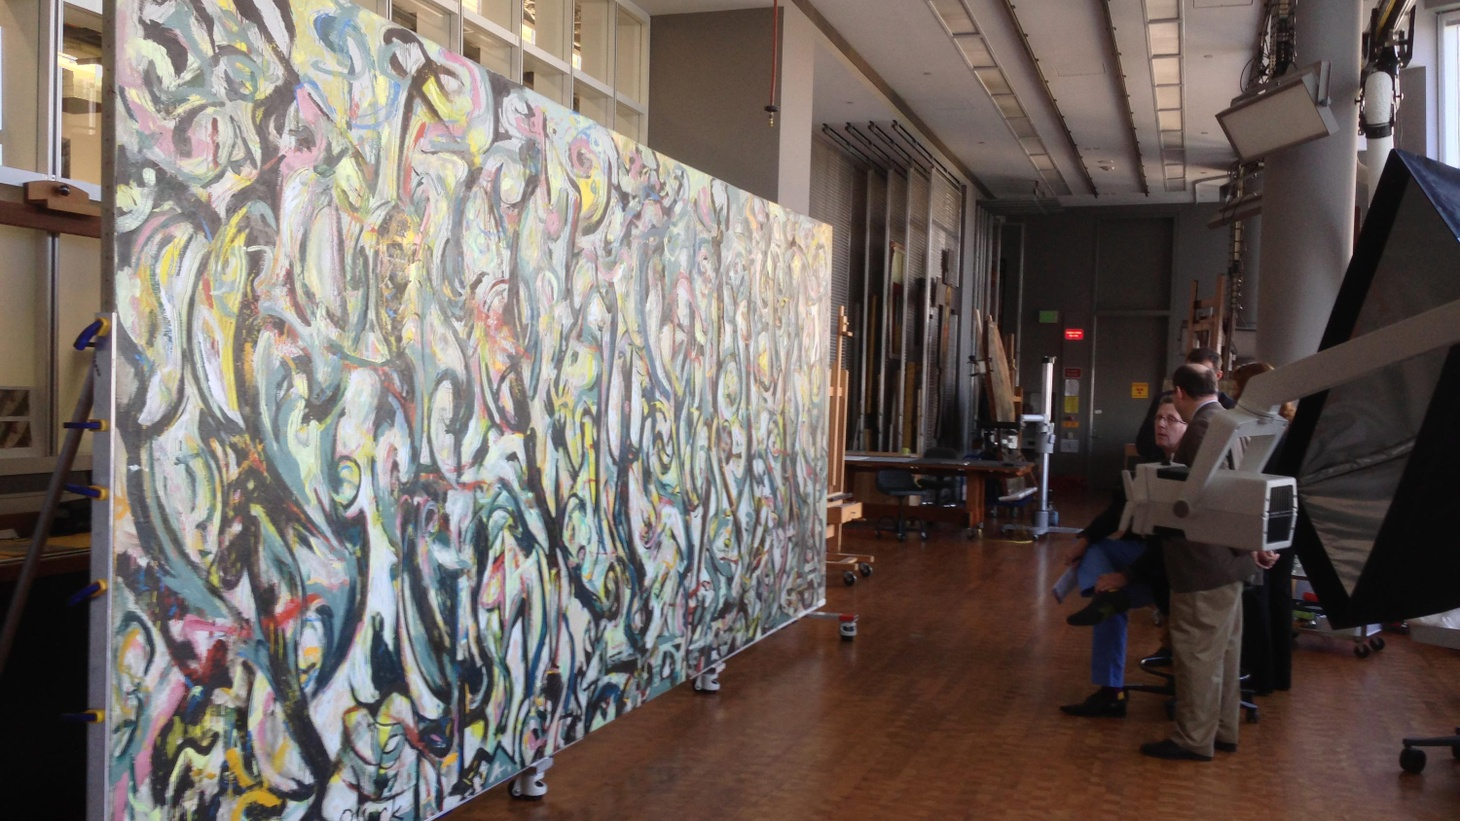 Edward Goldman talks about the newly restored Jackson Pollock mural opening at the Getty, as well as two major LA artists exhibiting at LA Municipal Gallery.